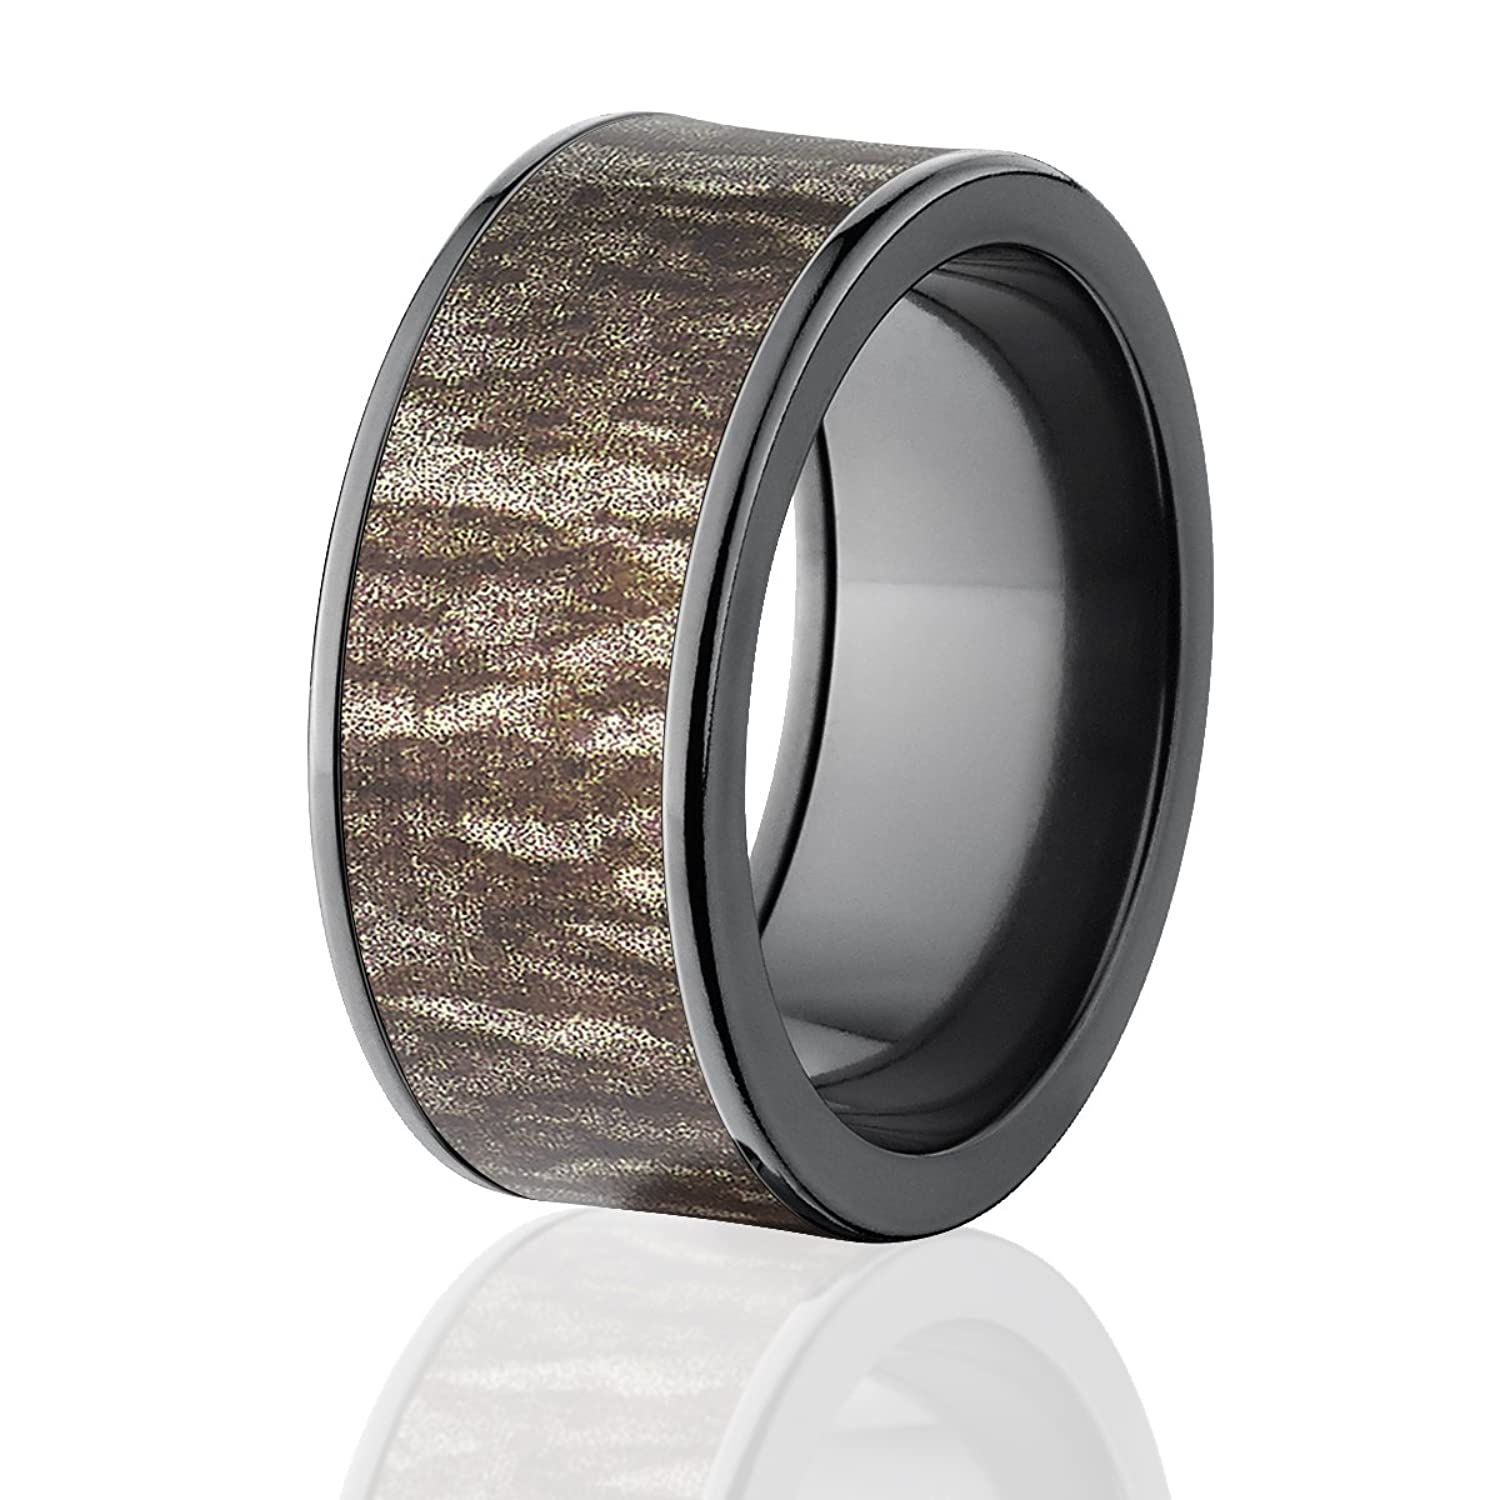 mossy oak rings camo wedding bands black bottomland camo ringsamazoncom - Mossy Oak Wedding Rings